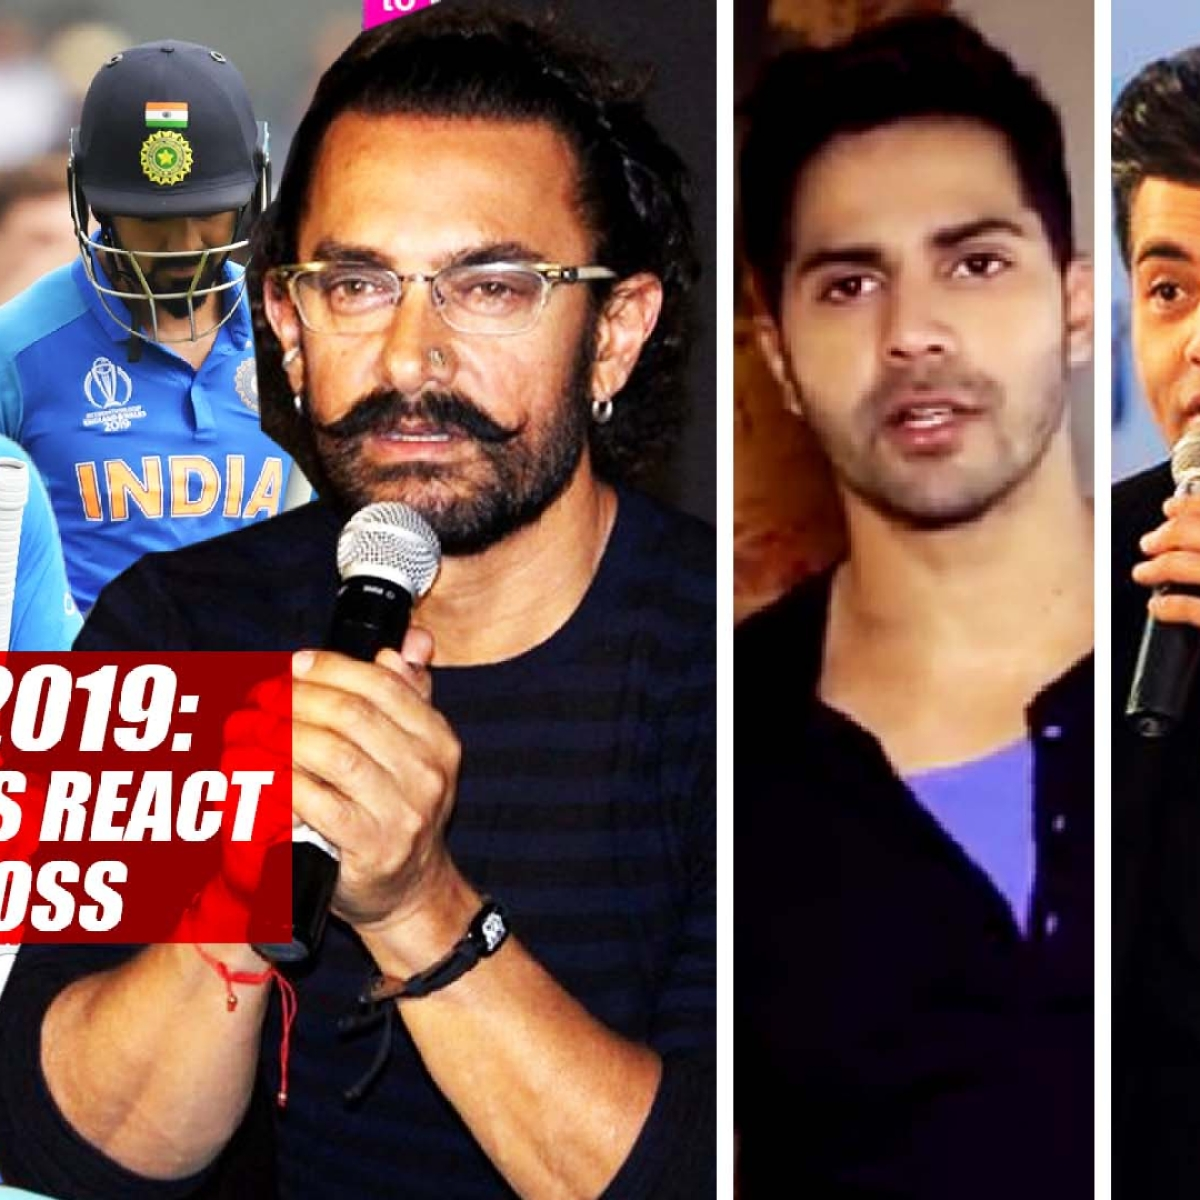 Cricket World Cup 2019: Bollywood Celebs React To Team India's Loss